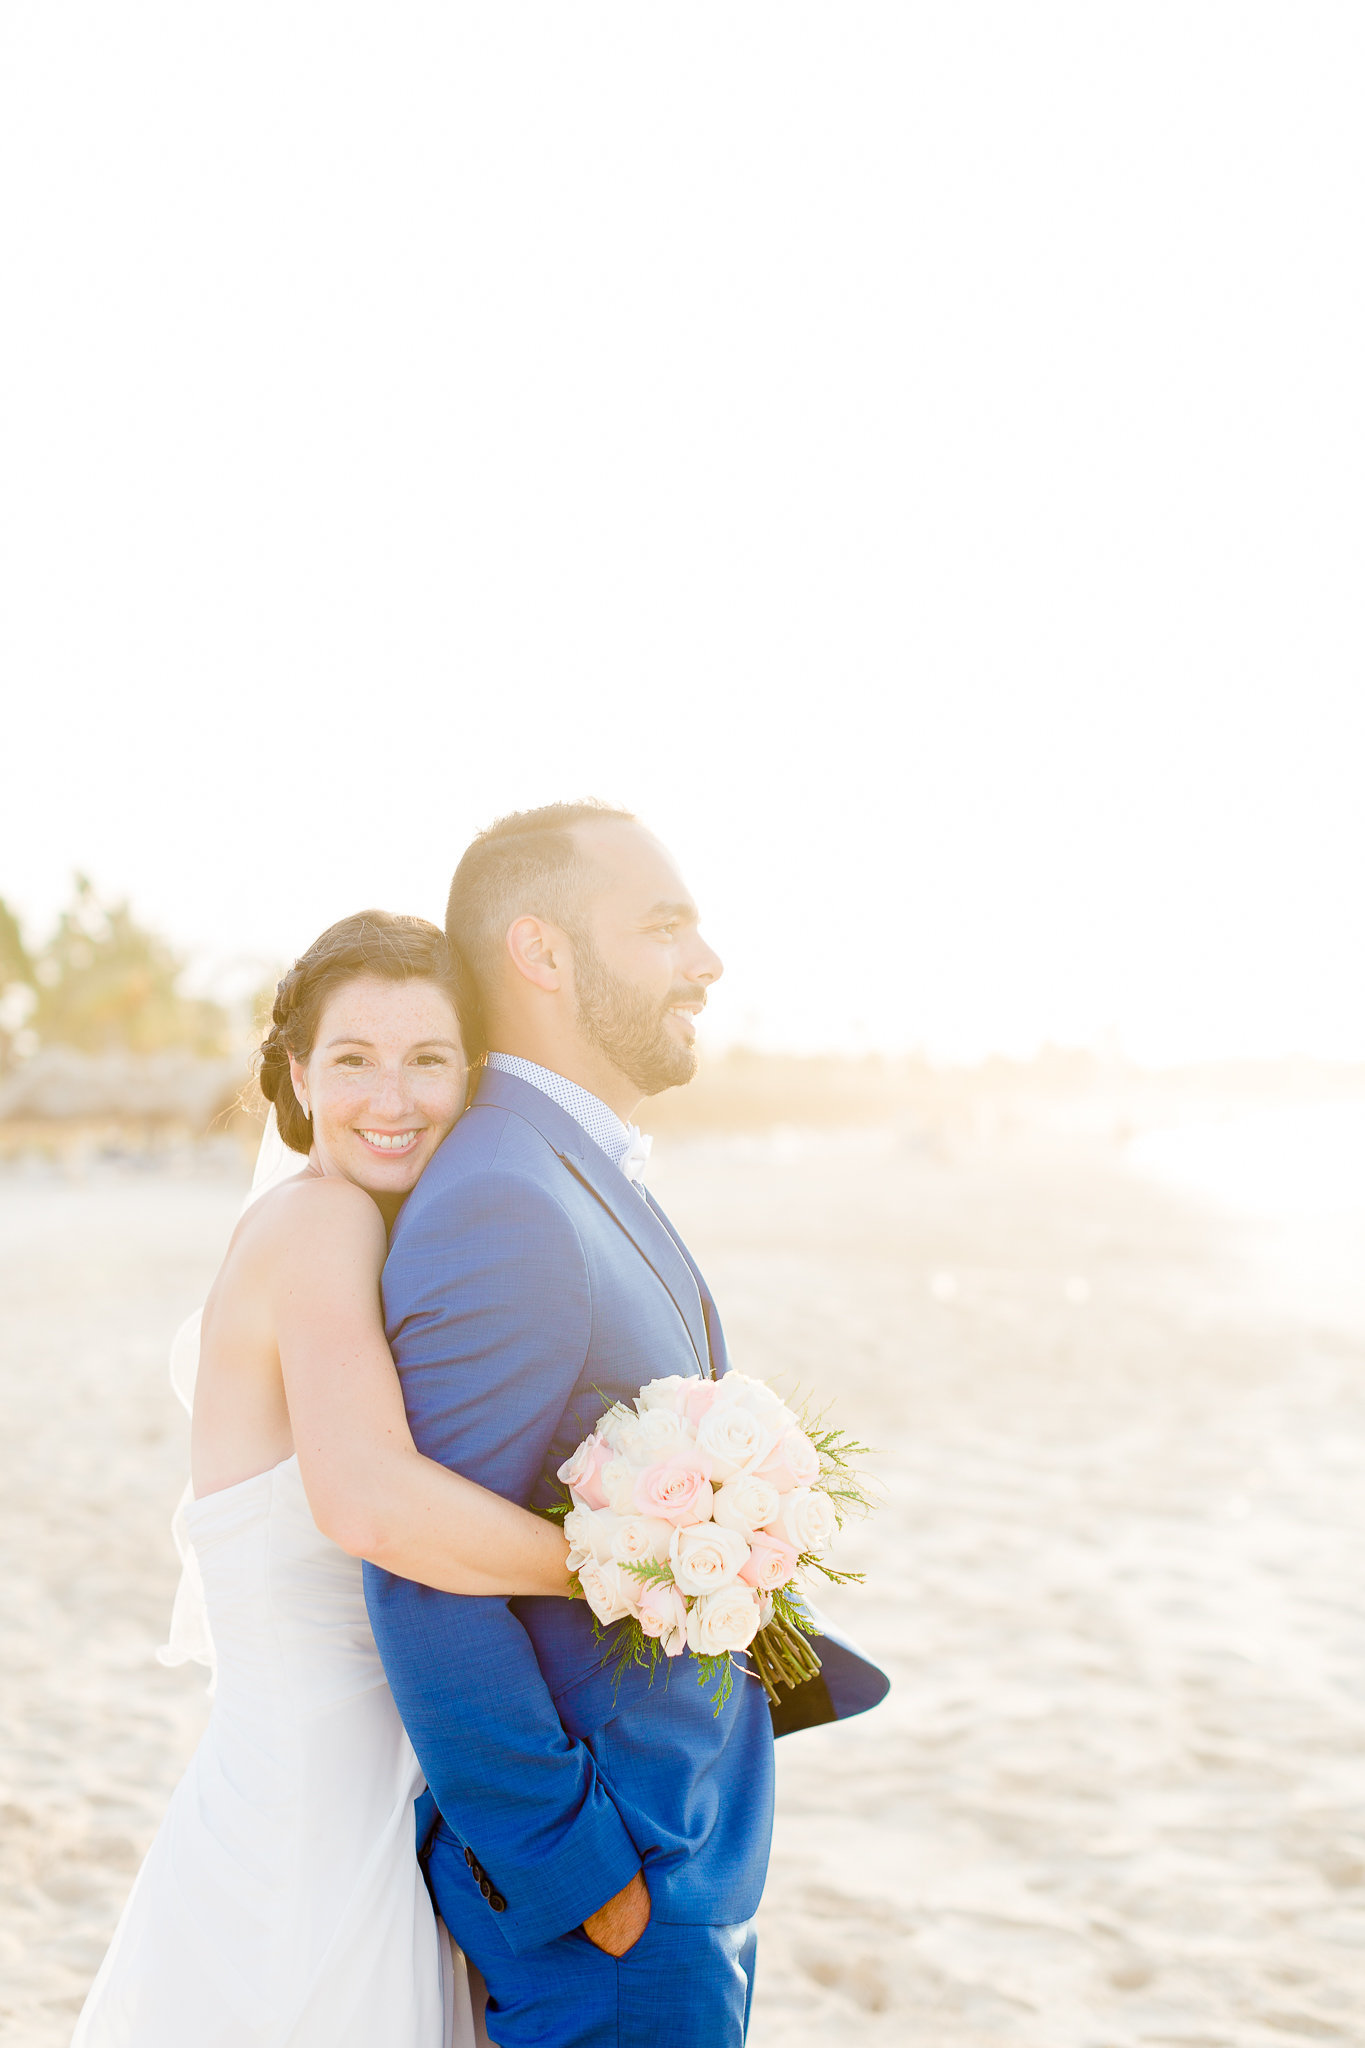 photographe-mariage-punta-cana-republique-dominicaine-lisa-renault-photographie-wedding-destination-photographer-65